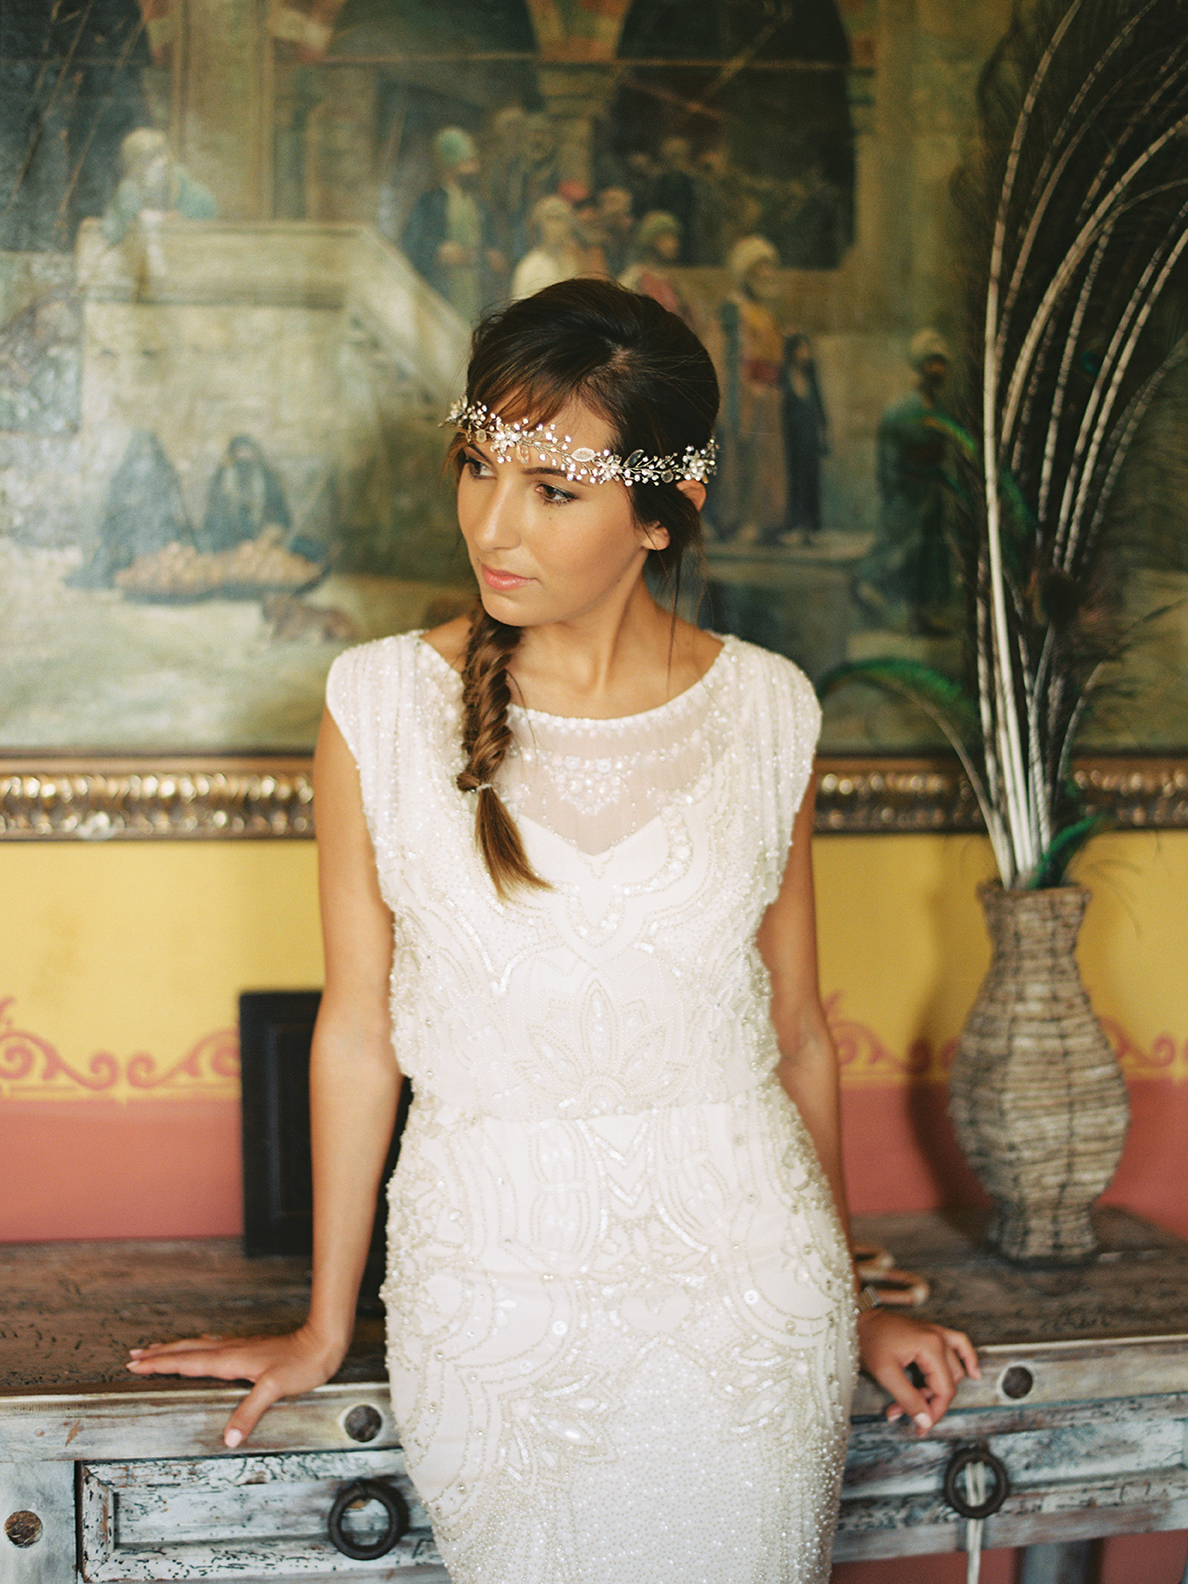 039_Dany+Sarah_Merida_Mexico_Wedding_Brumley & Wells_Fine_art_film_photography.jpg